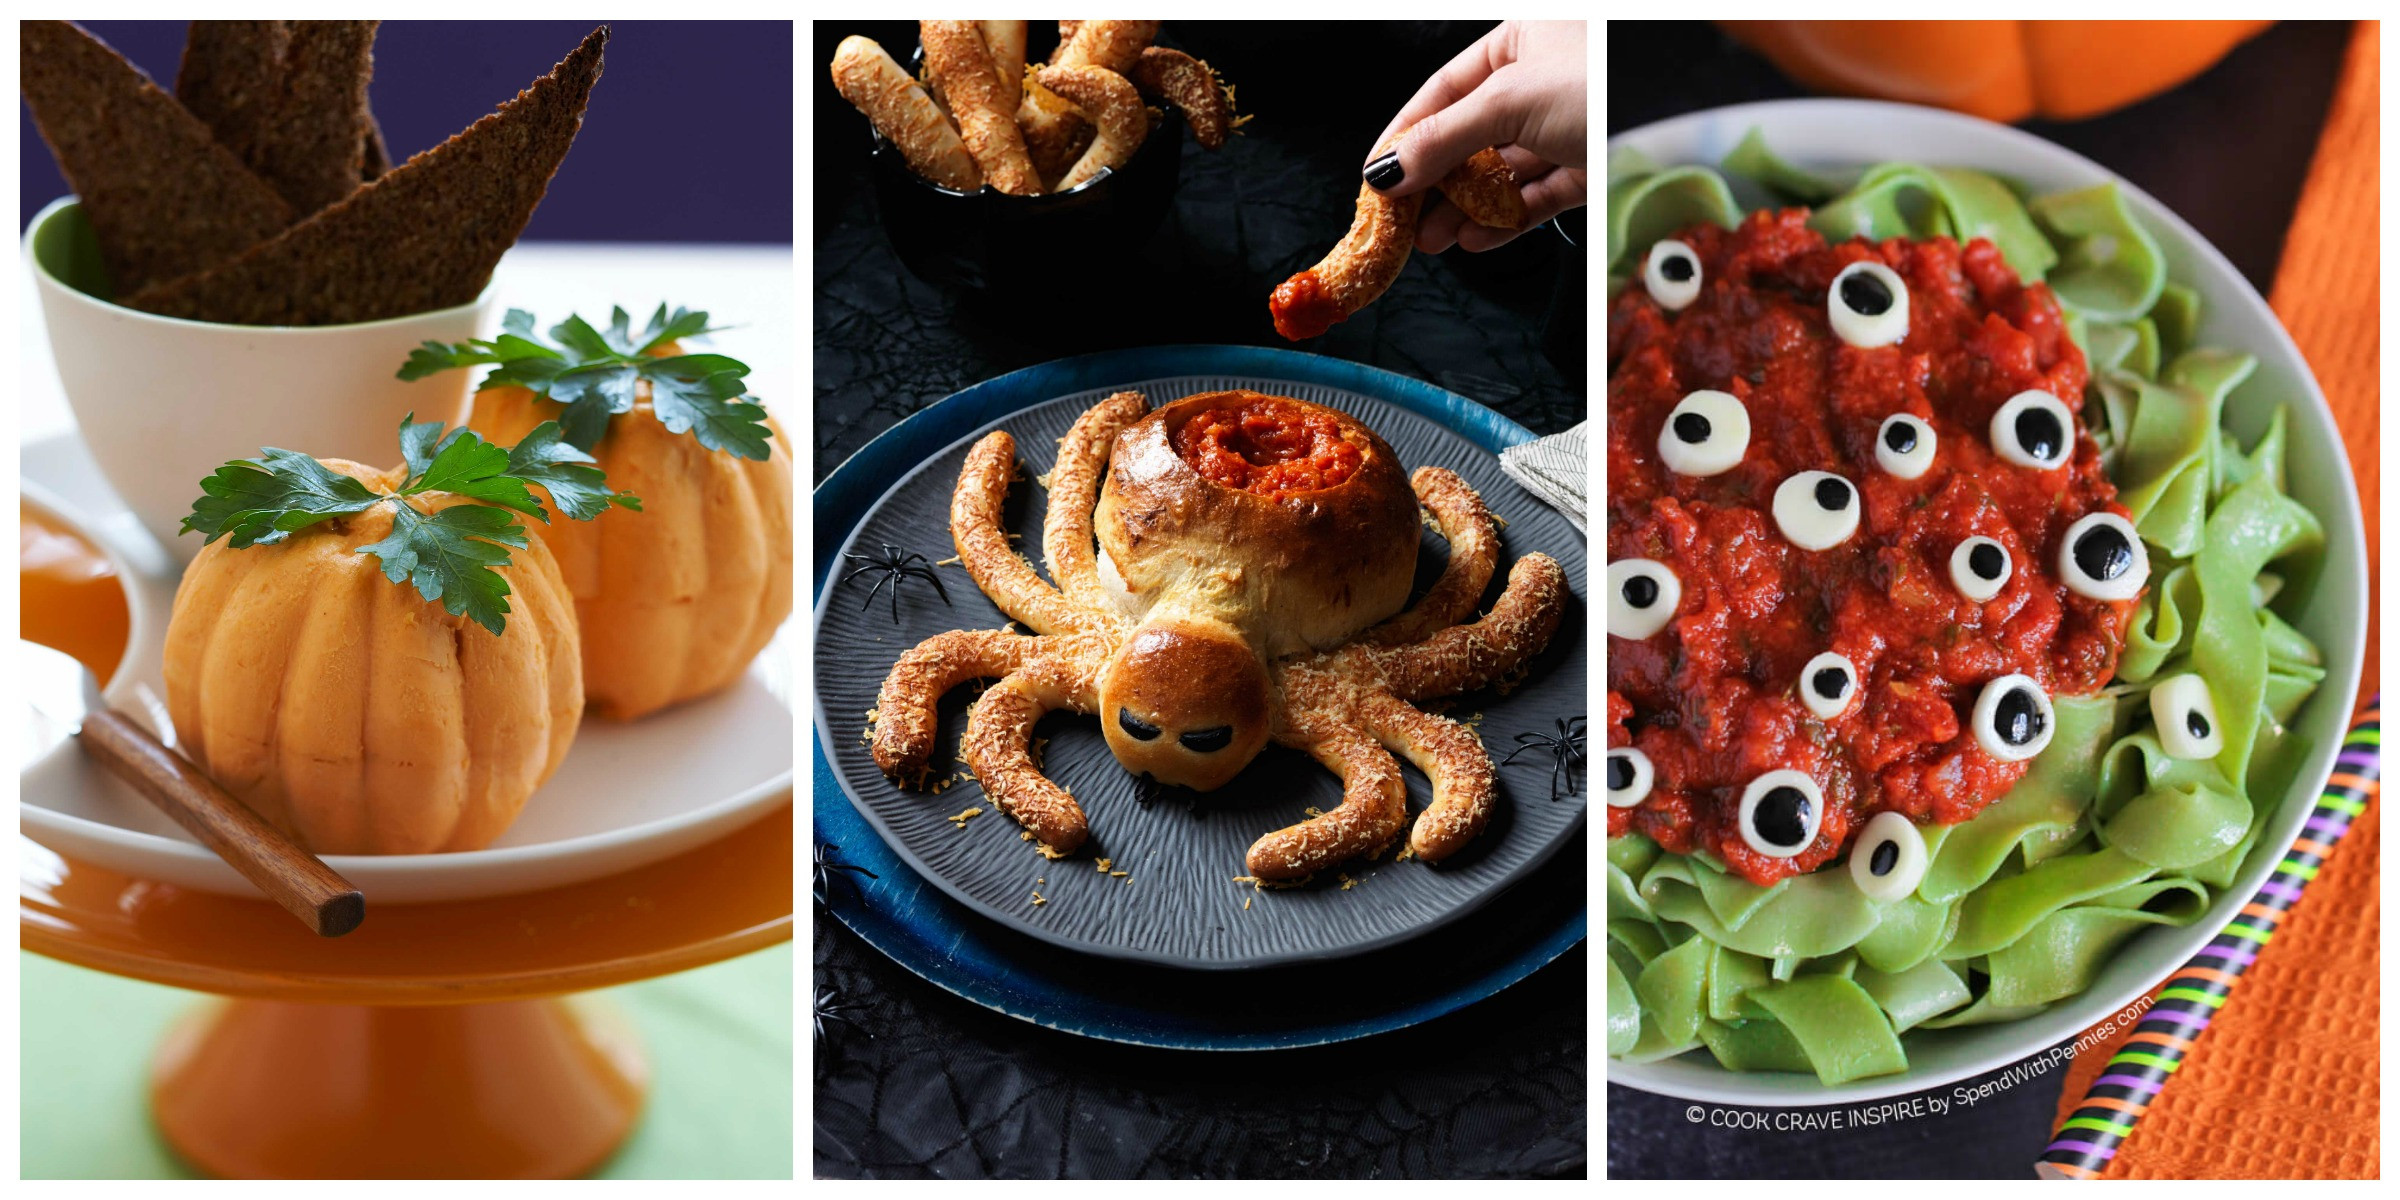 Fun Halloween Dinners  25 Spooky Halloween Dinner Ideas Best Recipes for